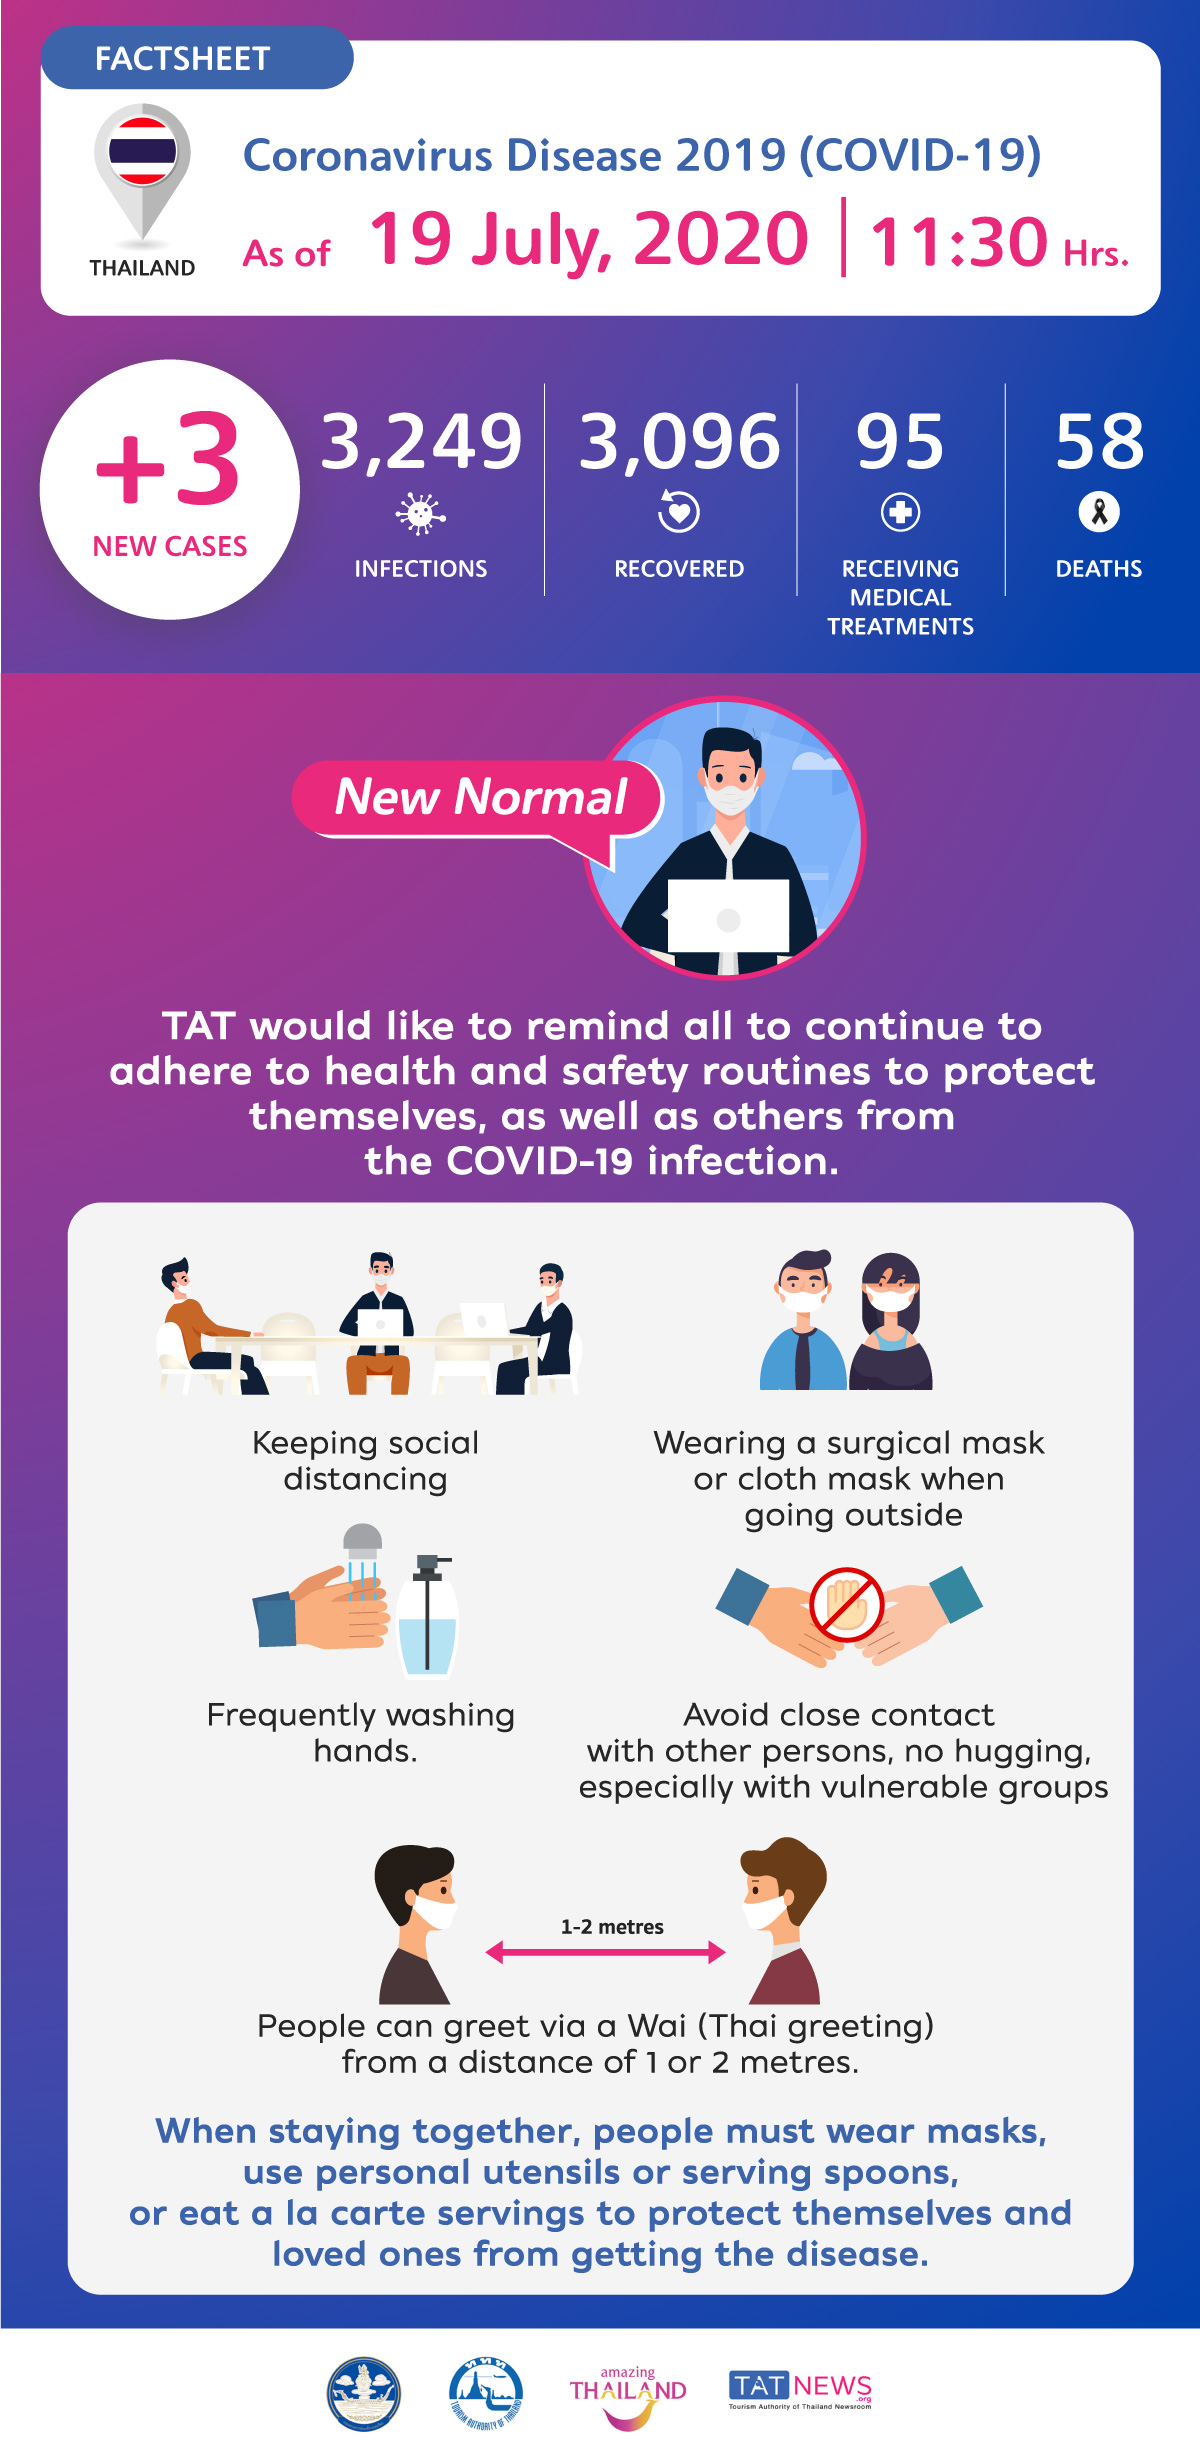 Coronavirus Disease 2019 (COVID-19) situation in Thailand as of 19 July 2020, 11.30 Hrs.